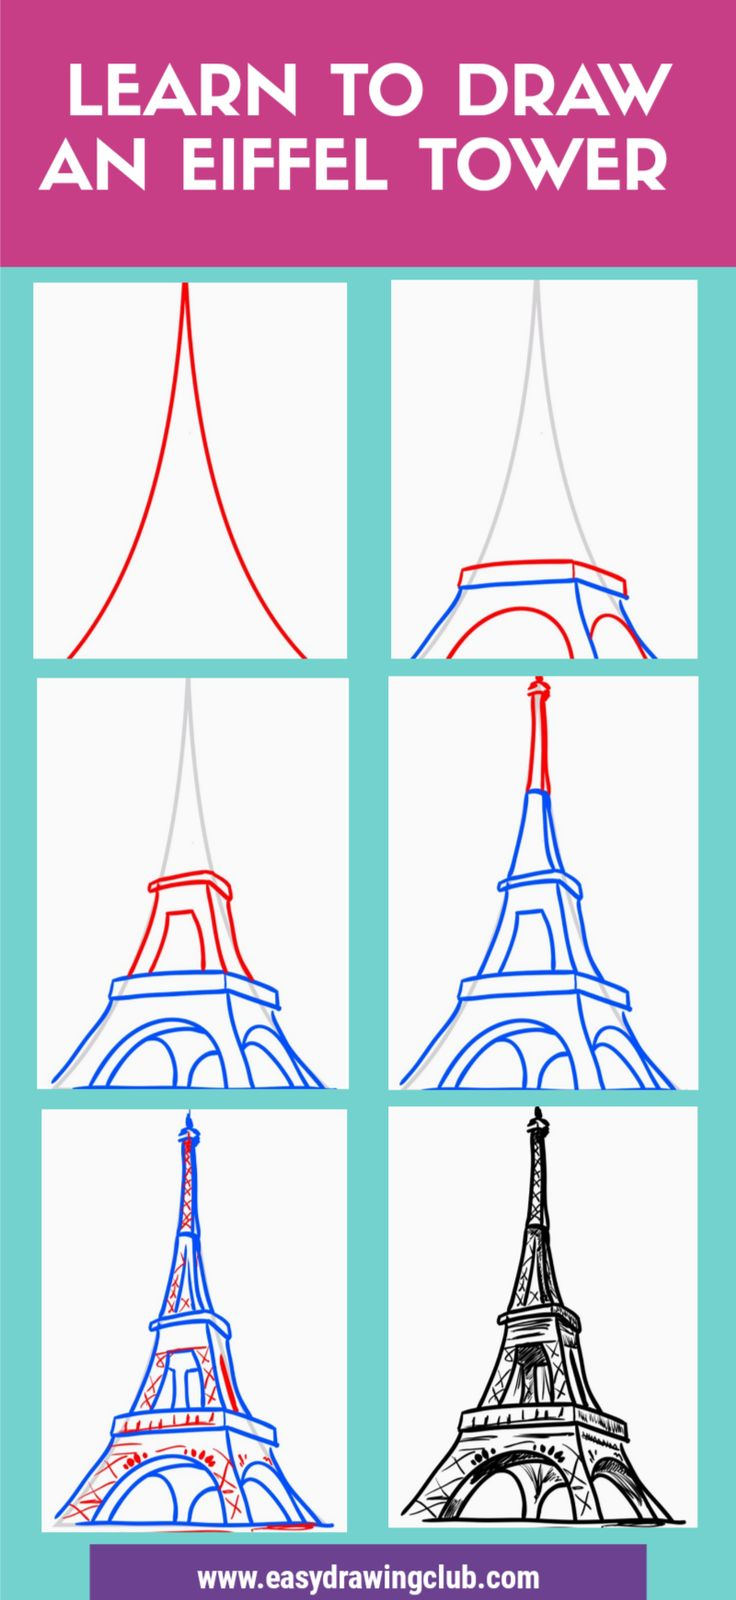 Learn How To Draw A Cool Easy Eiffel Tower Drawing Sketch In 11 Easy Steps Eiffel Tower Drawing Eiffel Tower Drawing Easy Eiffel Tower Painting